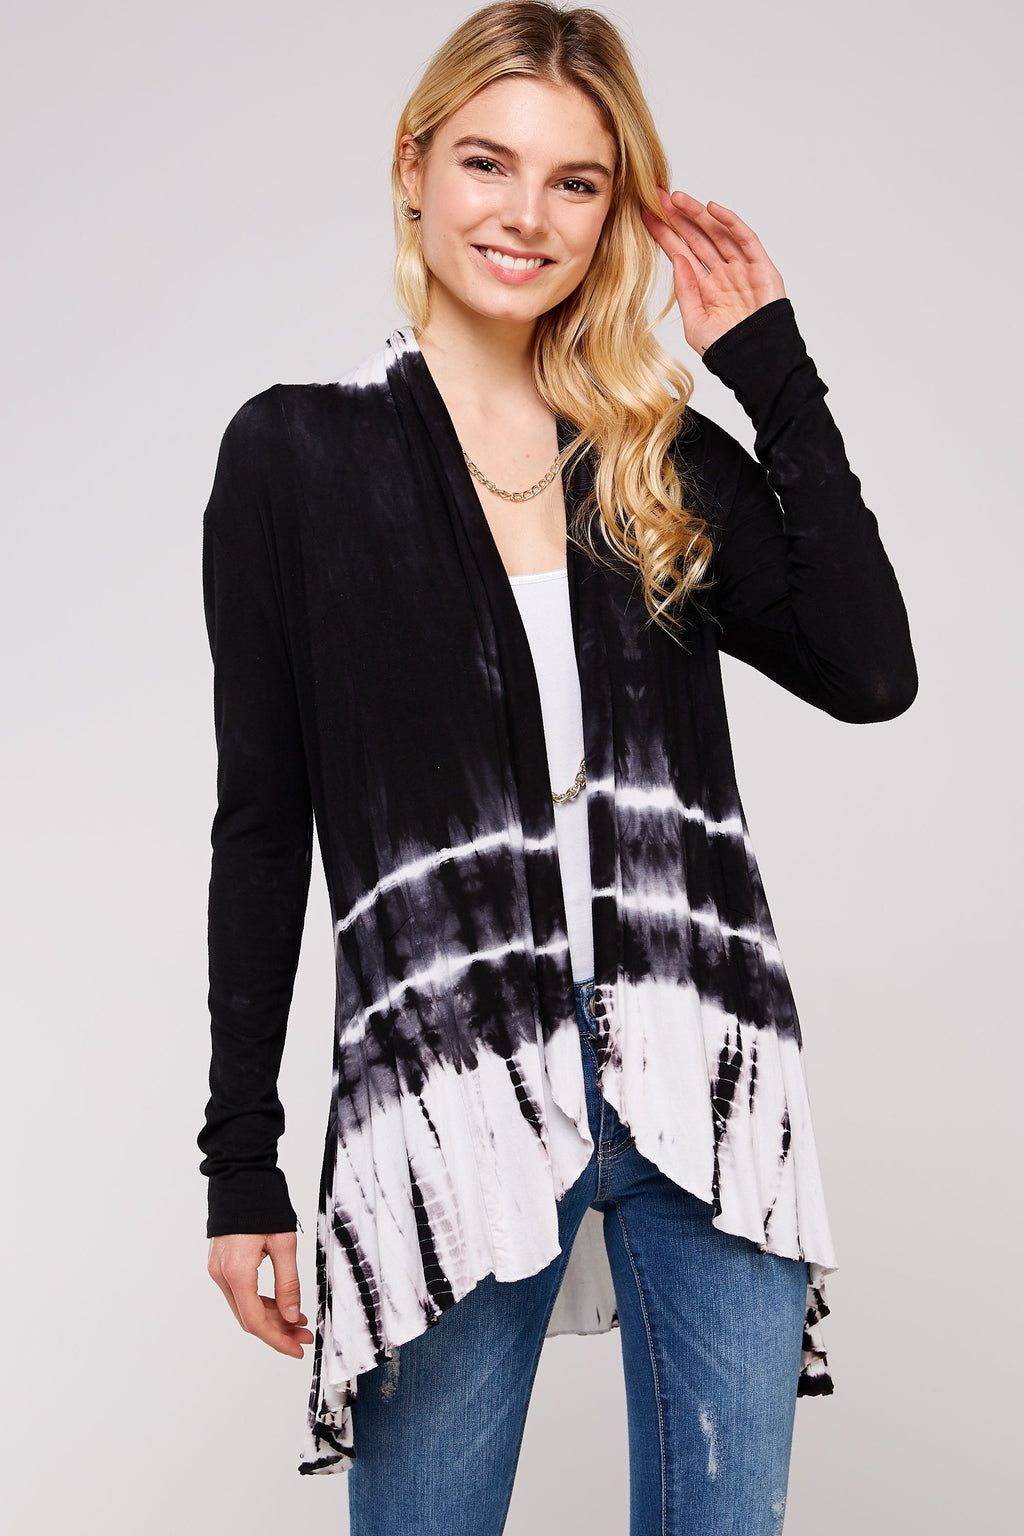 Wholesale Clothing, Online Wholesale Clothing, Women Clothing, Bohemian, Free People, tiedye, specialty wash, wholesale seller, wholesale women clothing shop, gypsy look, USA made, URBAN X FULL-SIZE-FULL SIZE RUN-UCRP3003, fashiontrend2019